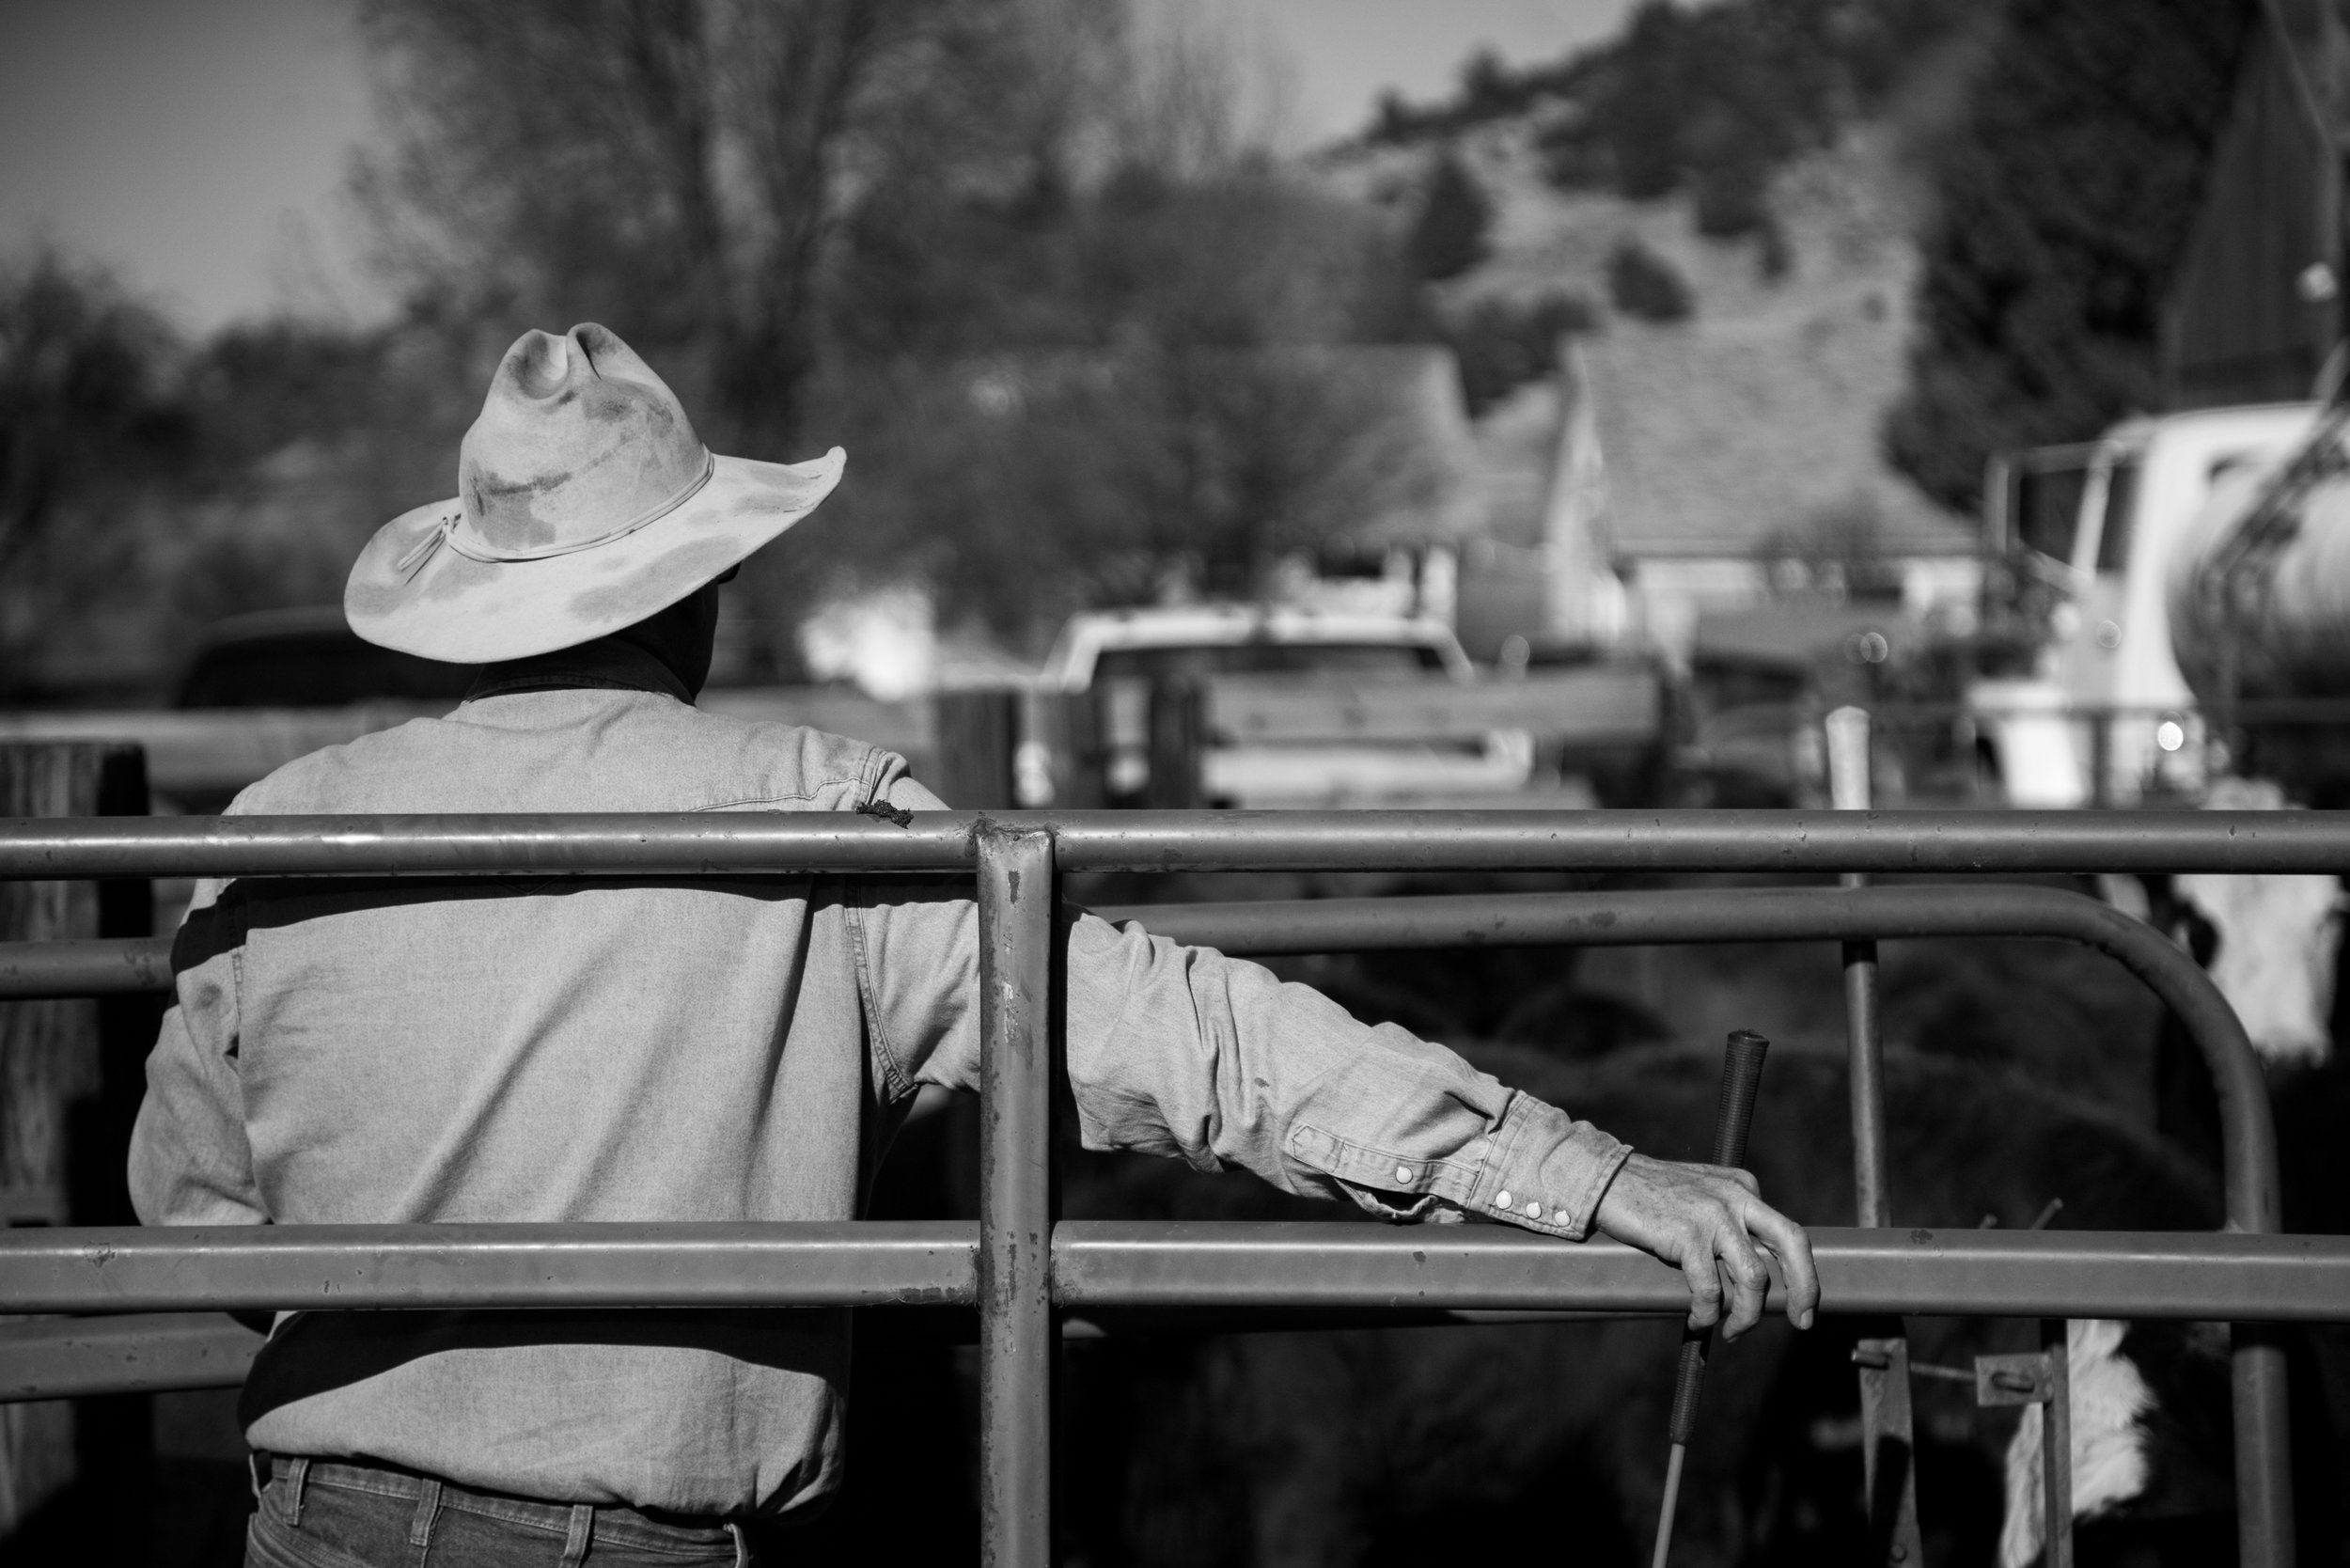 Influenced by my family's ranch, - the beauty and heartbreak in farming, and an all encompassing love of eating, I am constantly driven to connect over food. That connection is the heart of these tables.